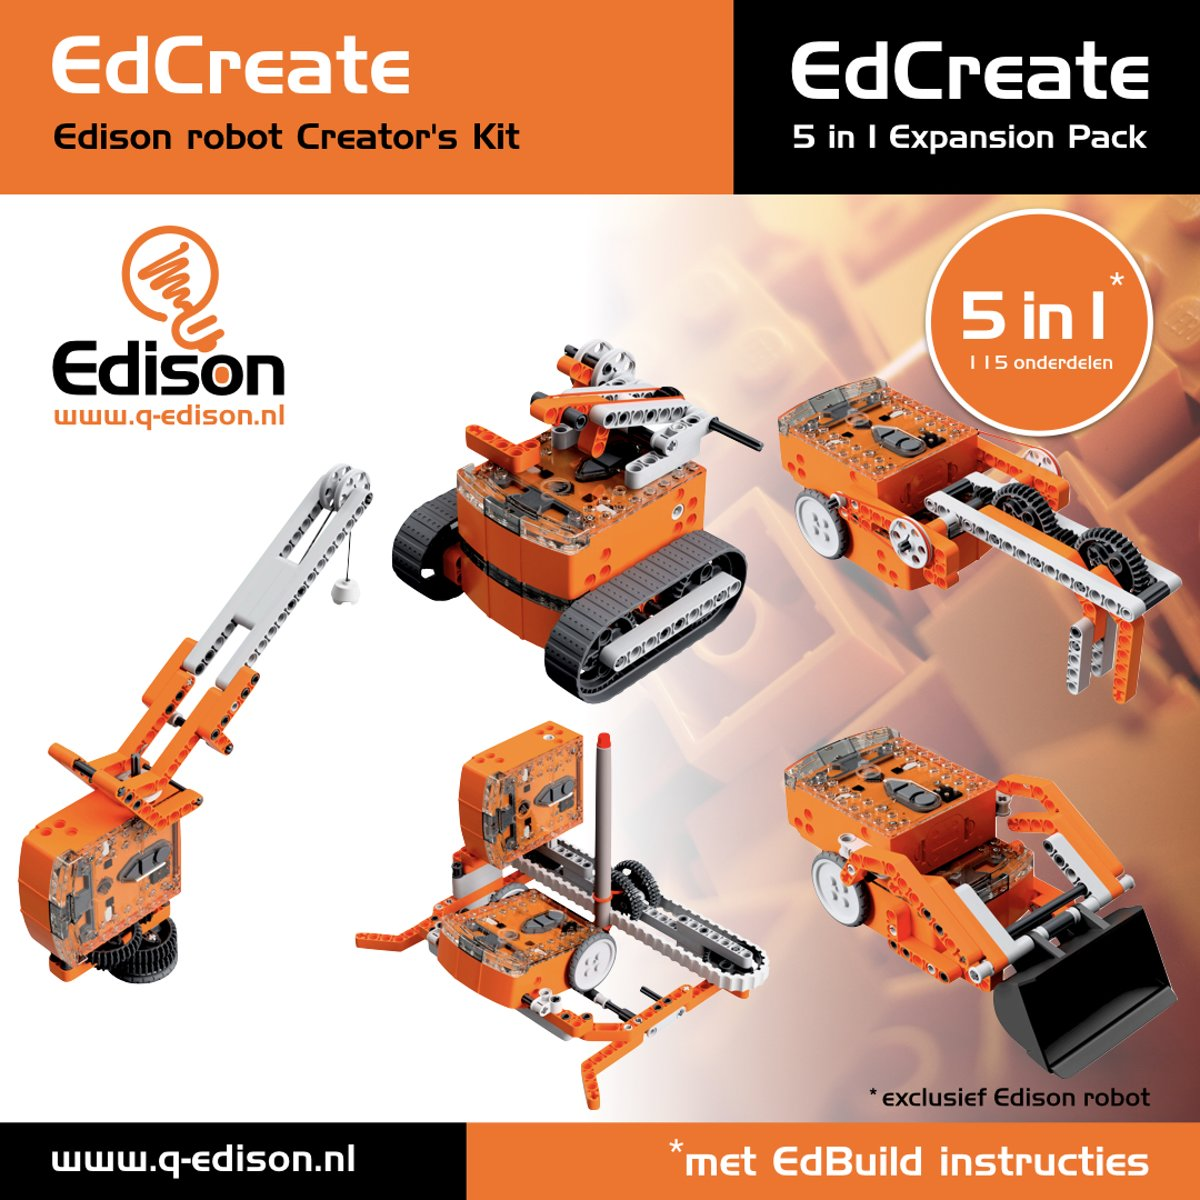 EdCreate Edison robot Creators Kit